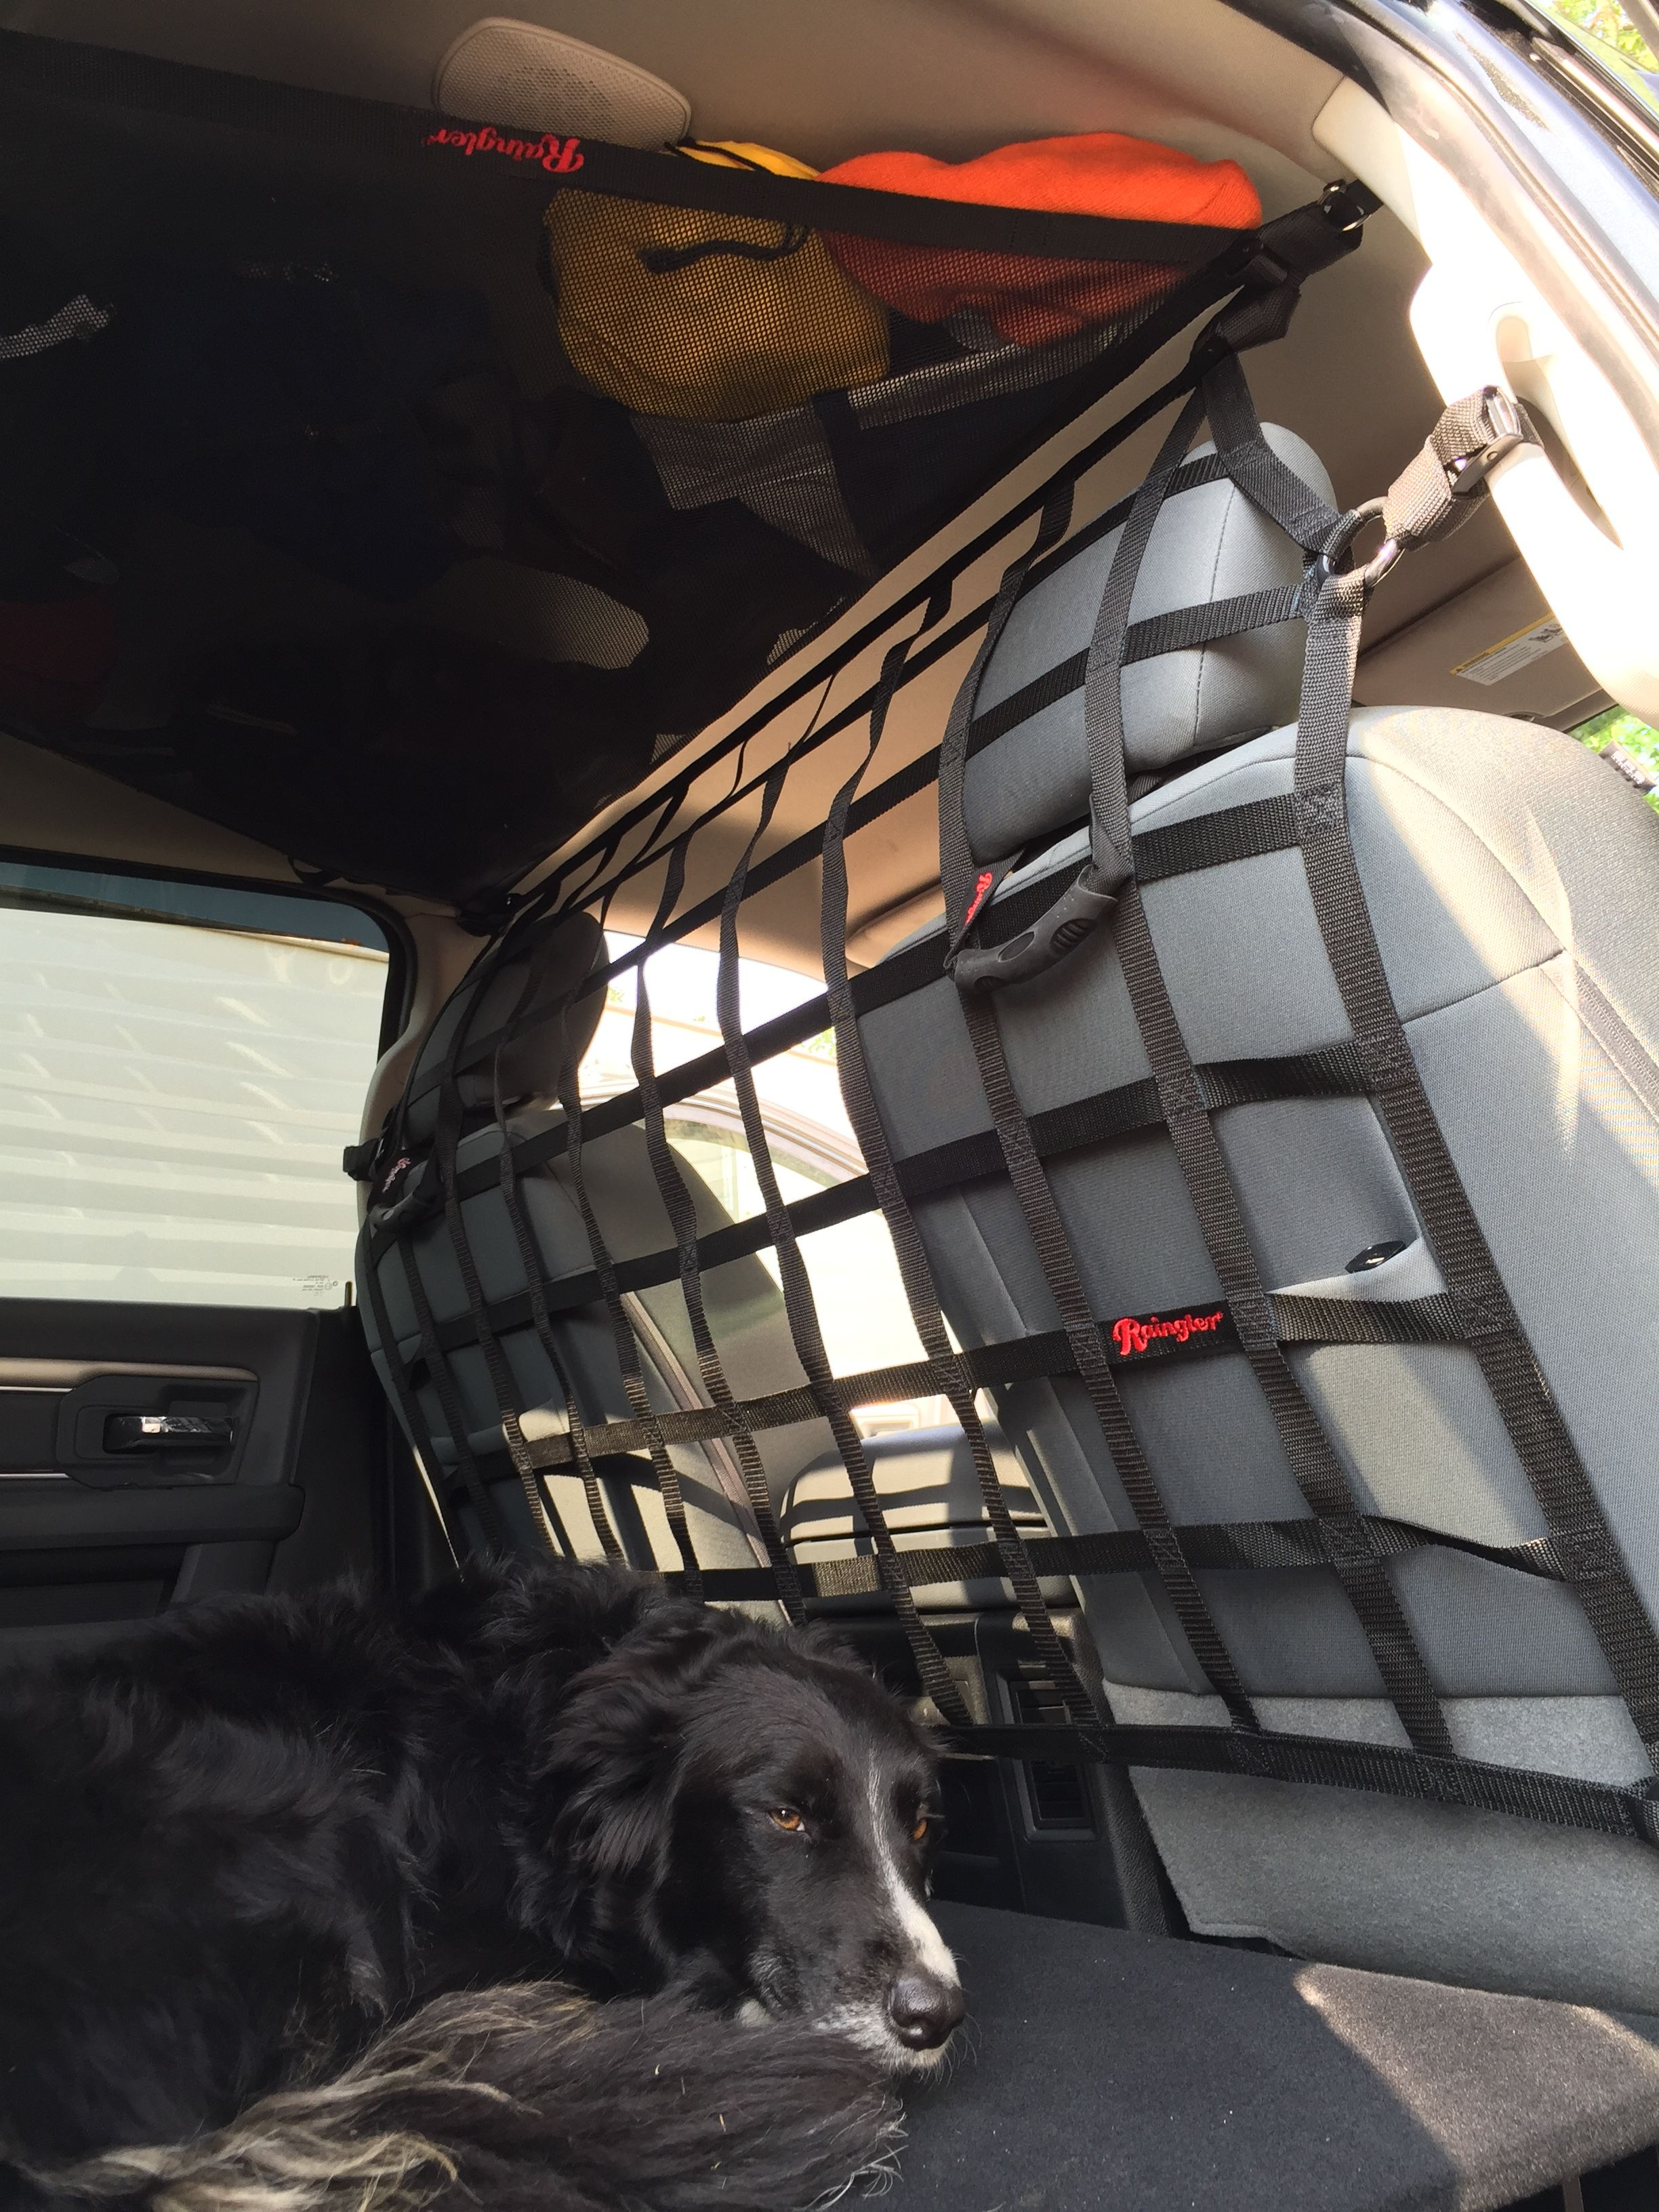 305d4186ca251333f63c0fc67acb1eb7 Take A Look About Jeep Dog Accessories with Captivating Gallery Cars Review